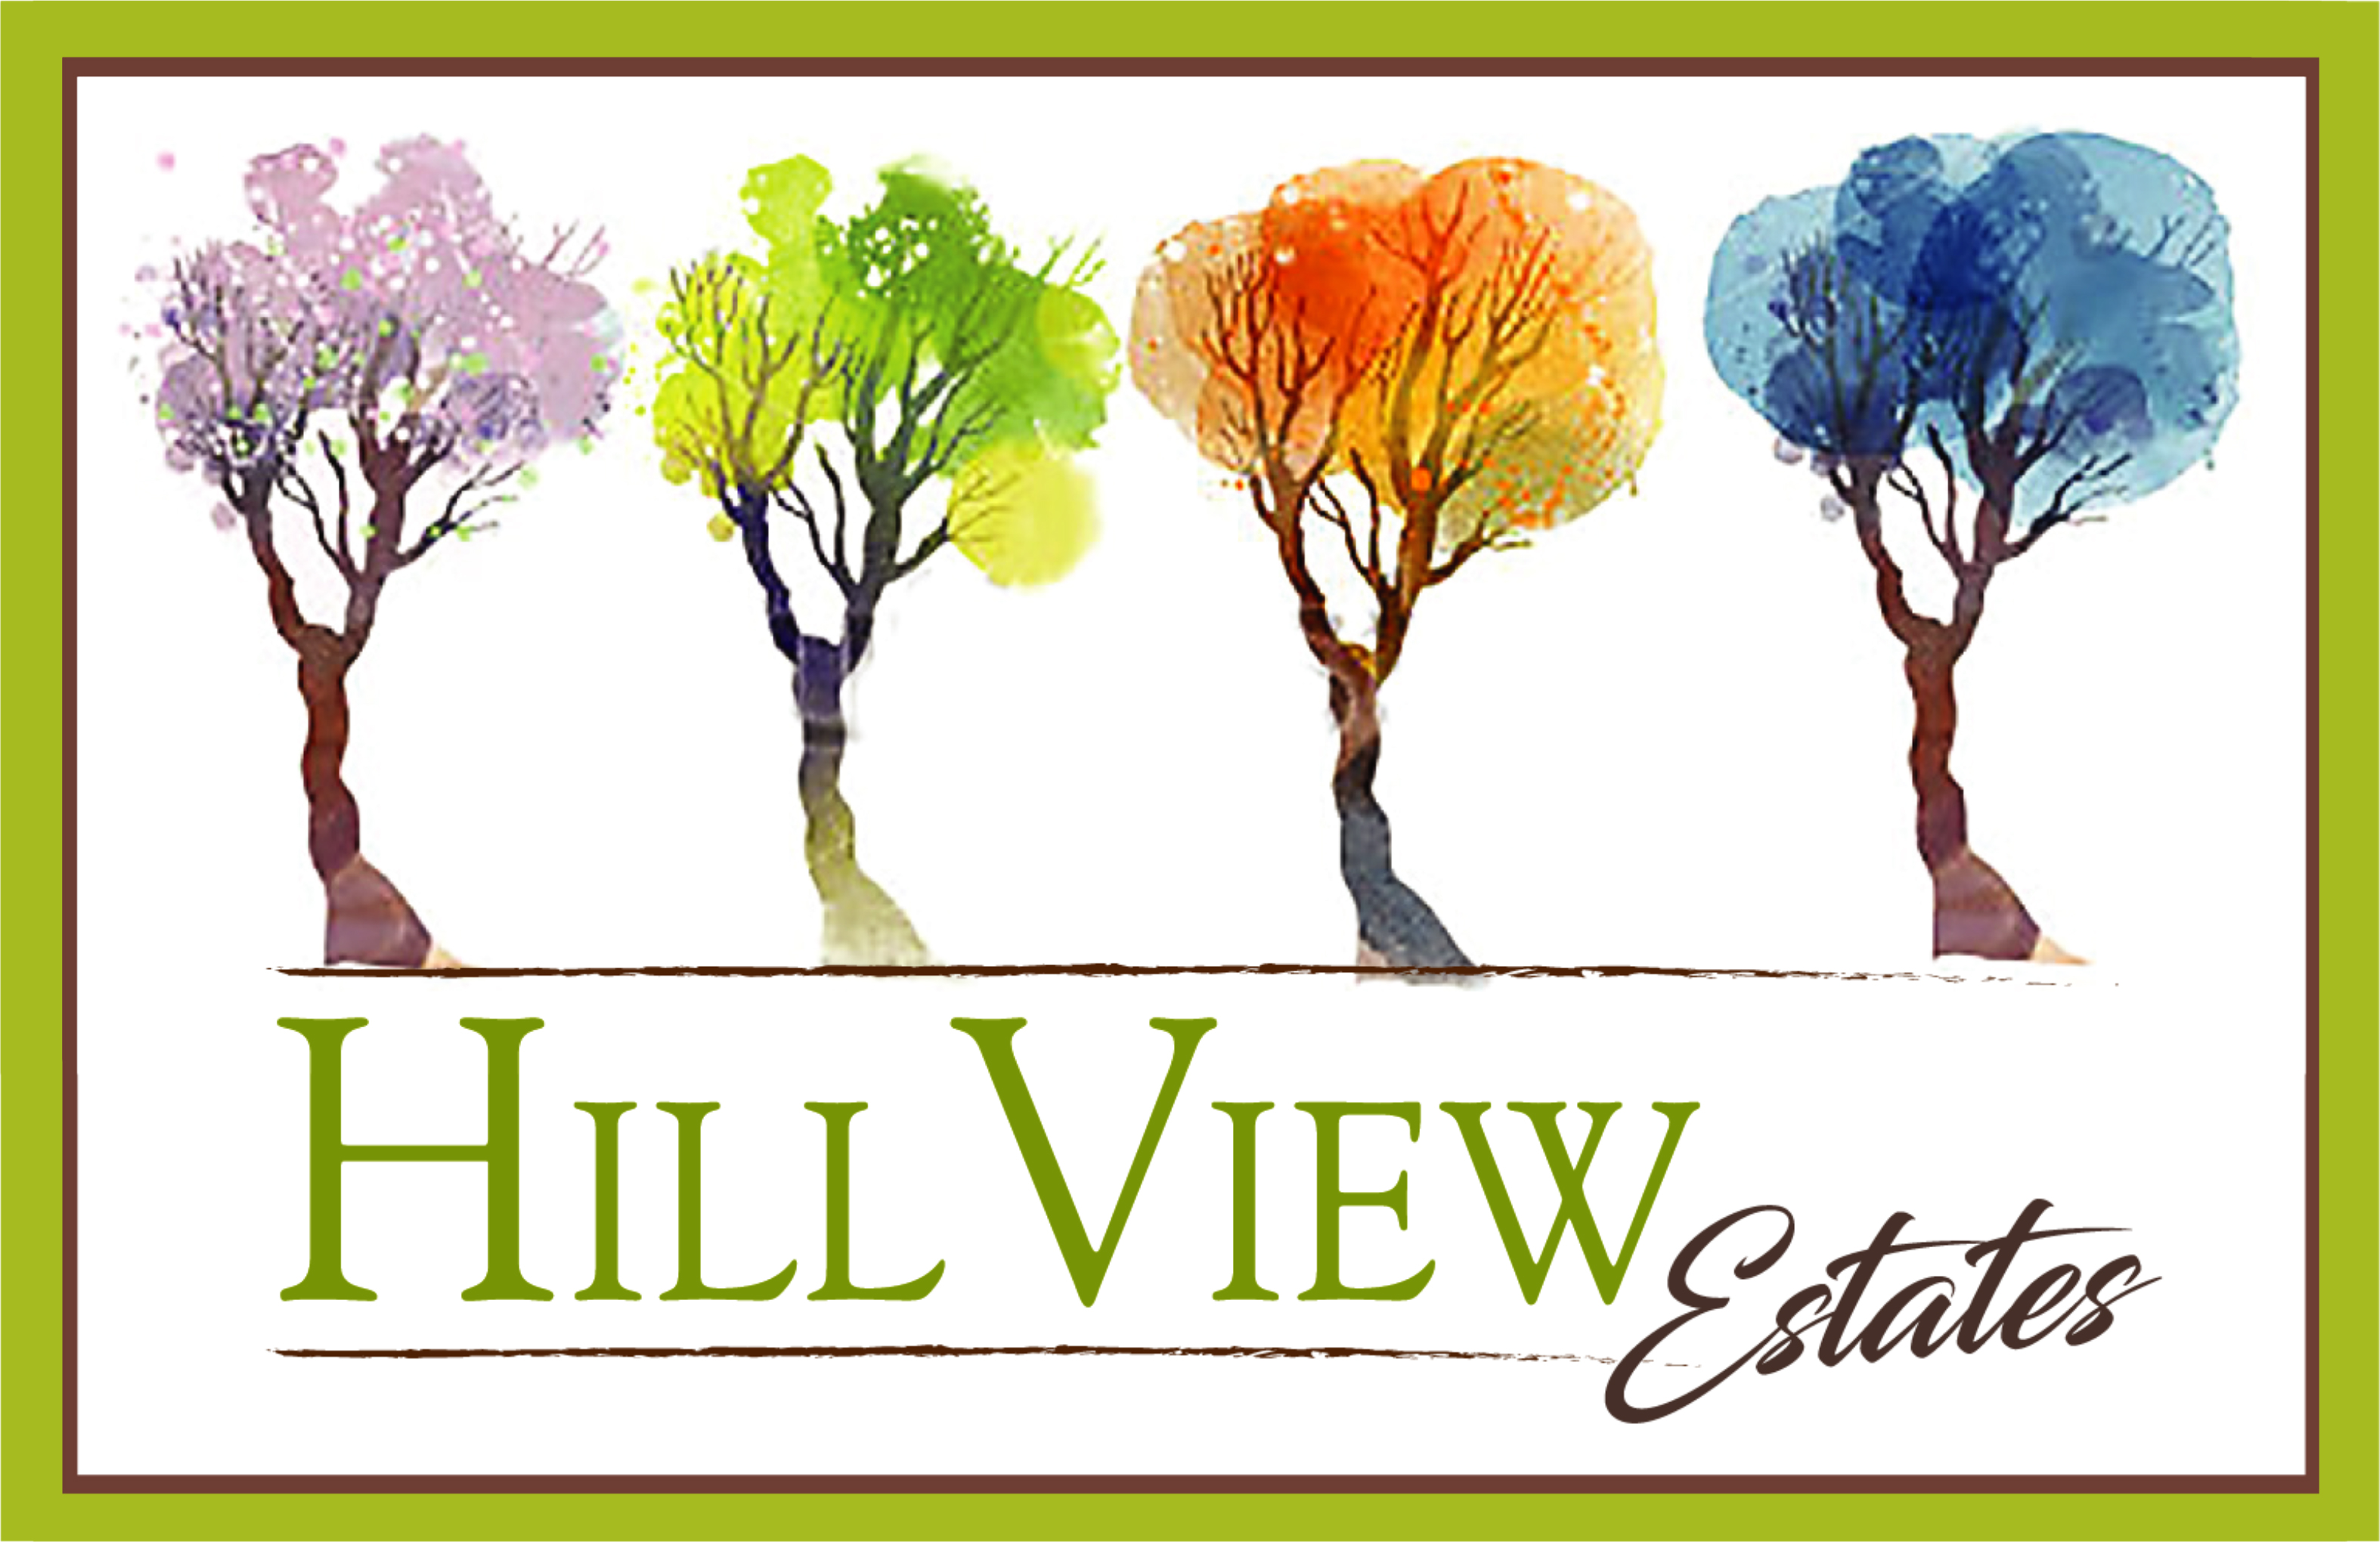 Hill View Estates